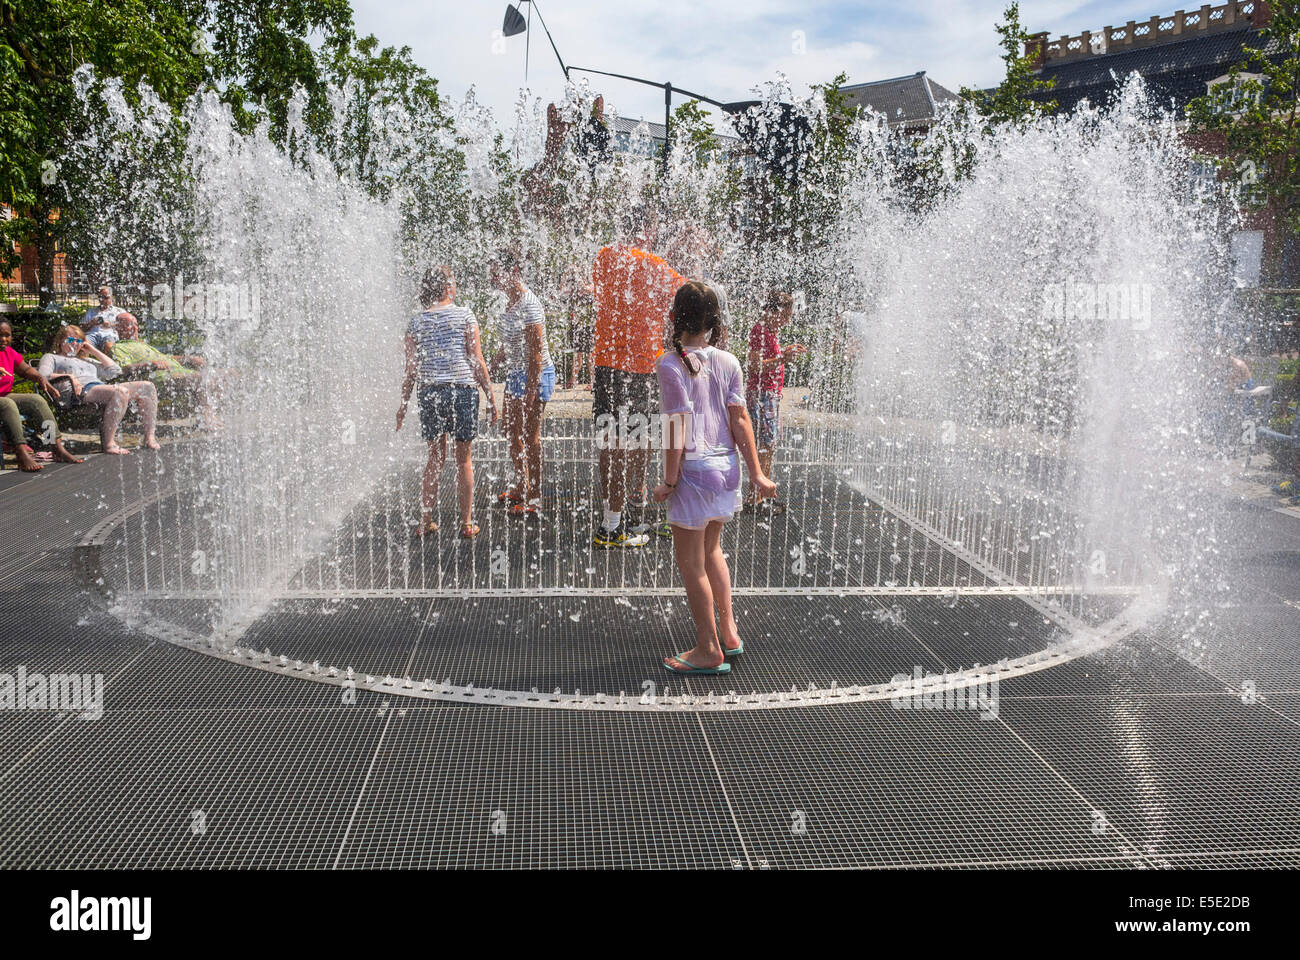 Amsterdam, Holland, Tourist Children Cooling off in Public Garden Fountains during Summer Heat Spell Stock Photo